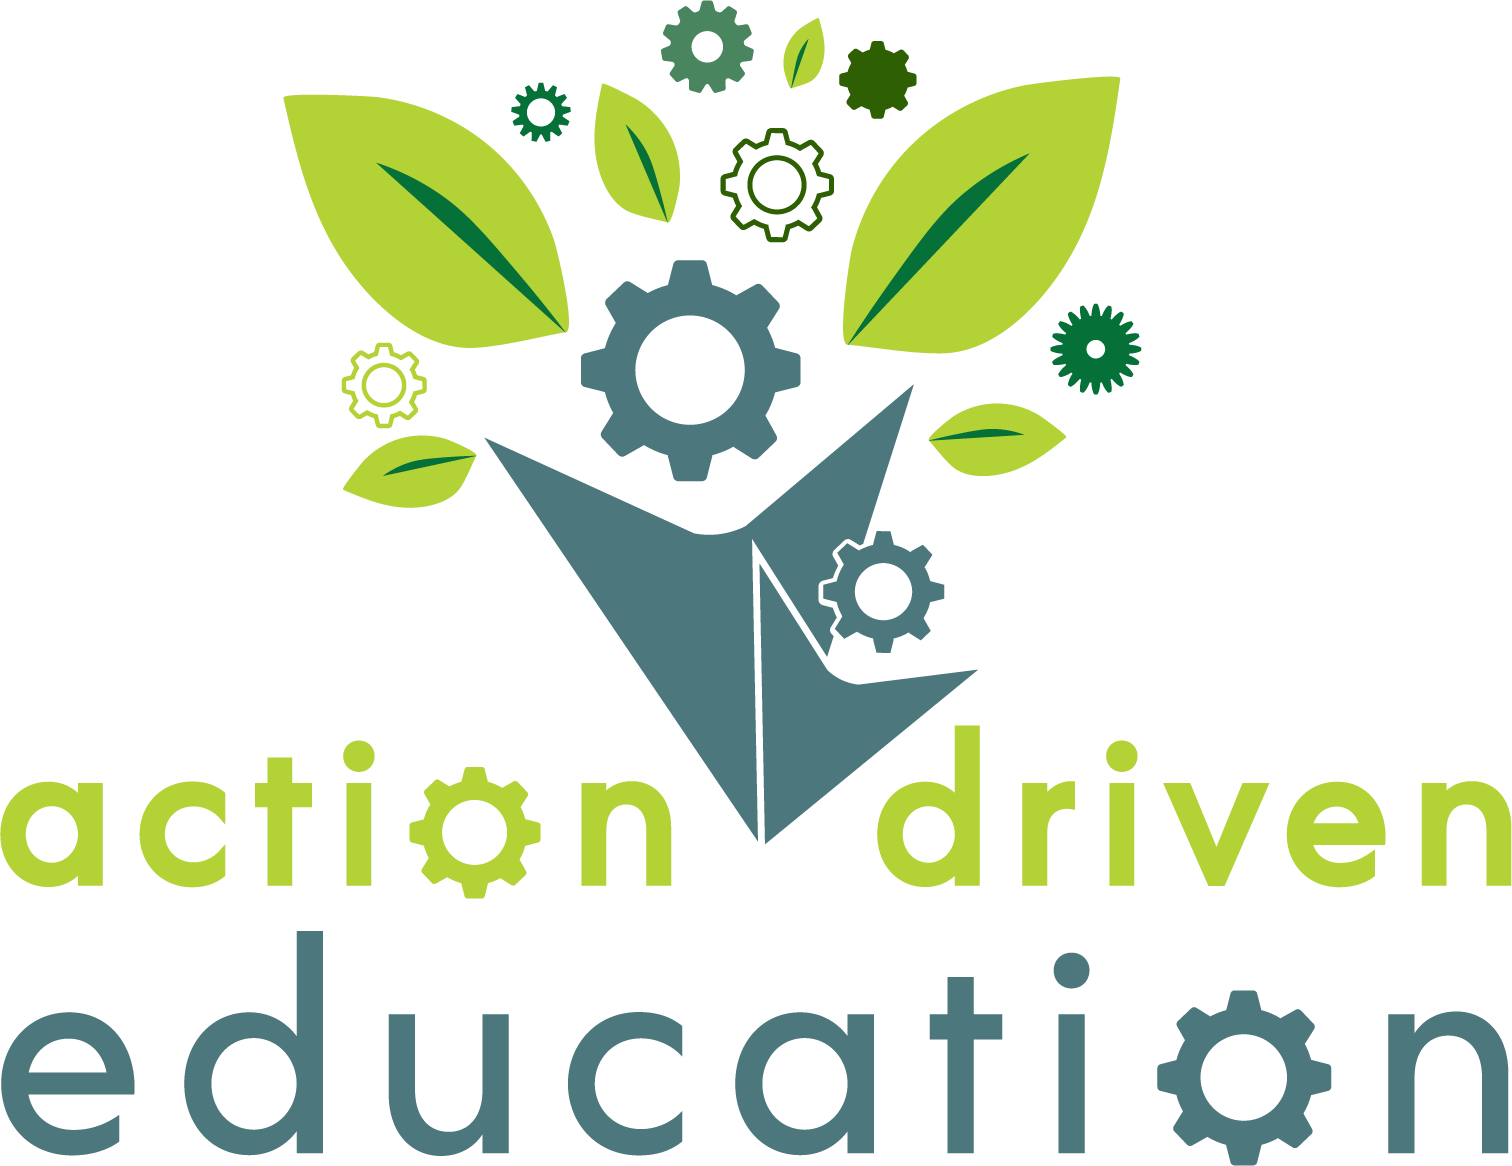 Action Driven Education